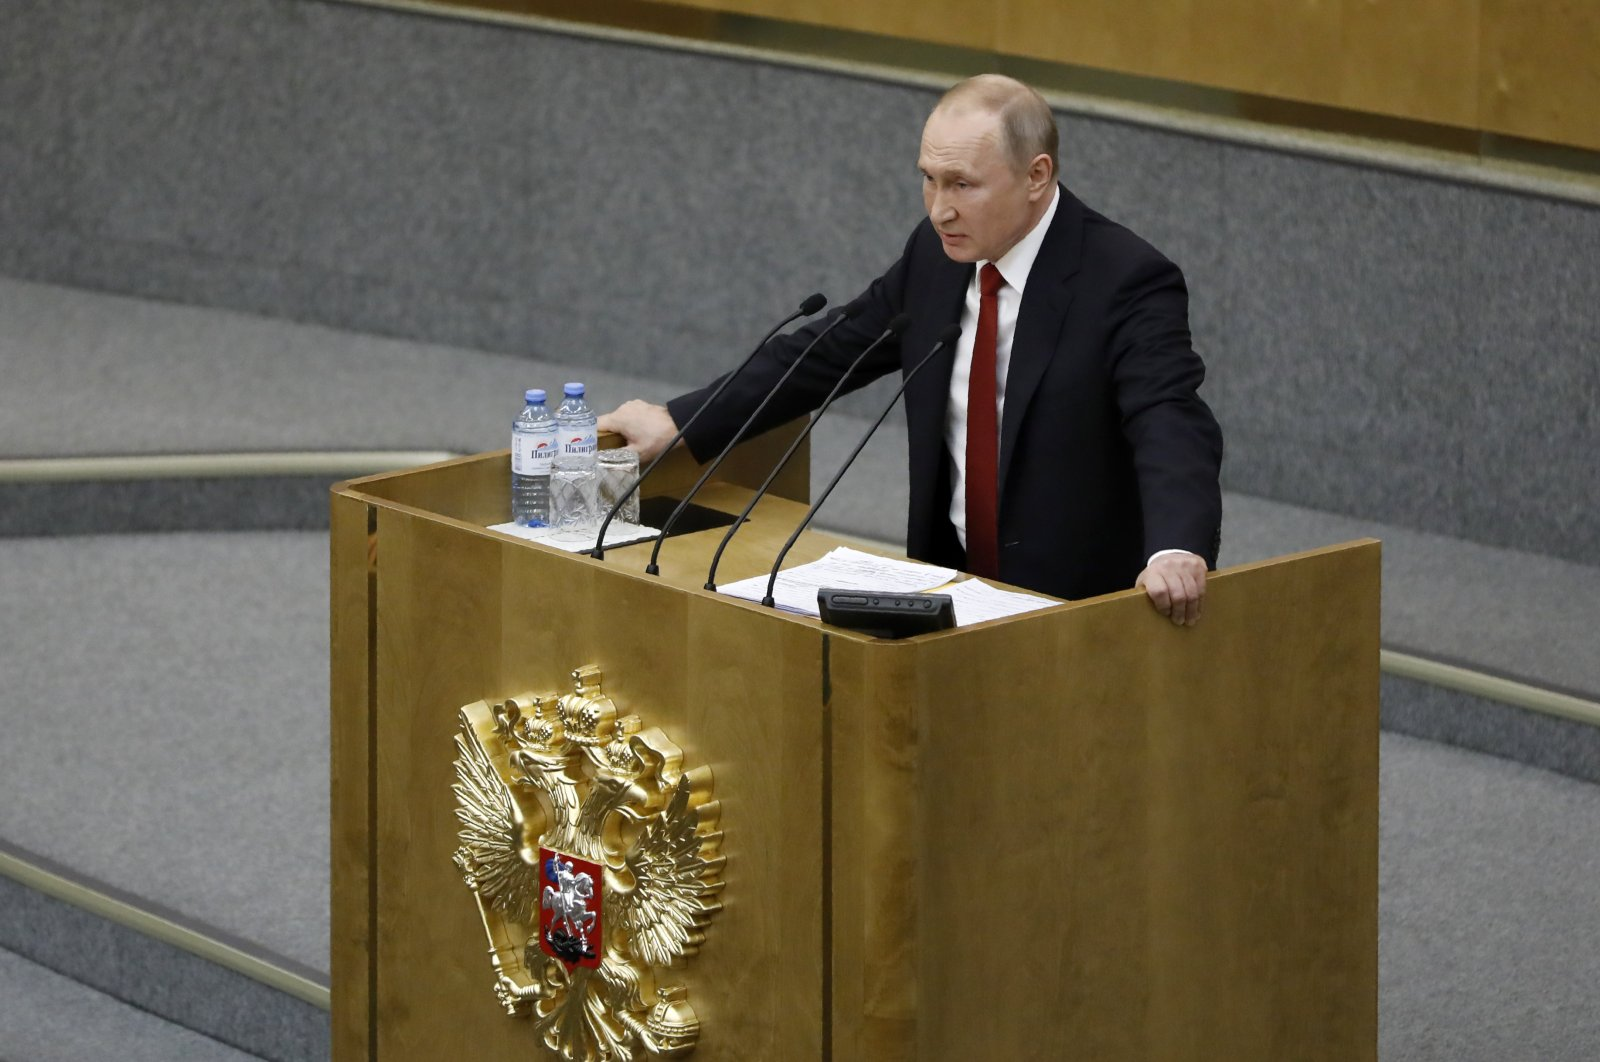 Russian President Vladimir Putin speaks during a session prior to voting for constitutional amendments at the State Duma, the Lower House of the Russian Parliament, Moscow, March 10, 2020. (AP Photo)